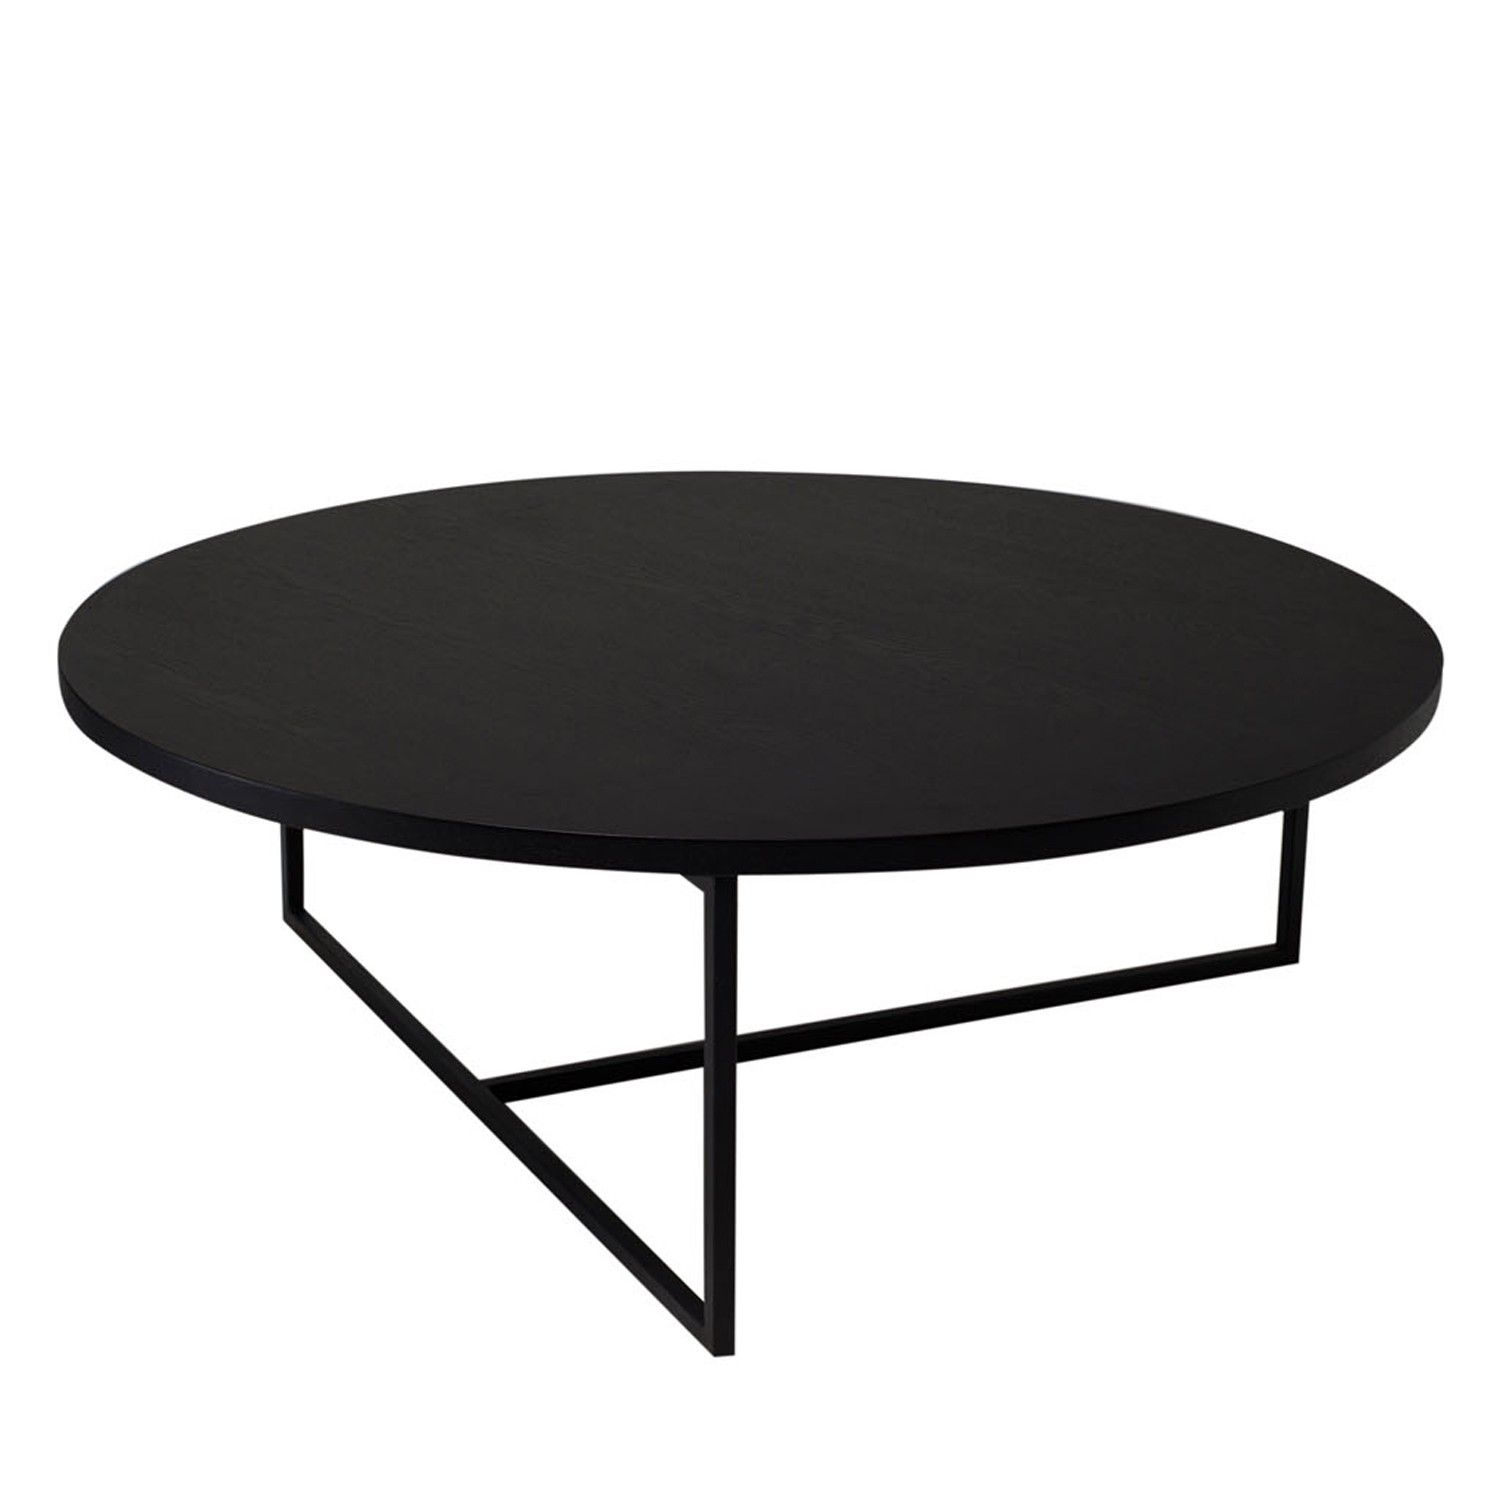 Dolf Round Coffee Table by URBN | YLiving | End tables in ...